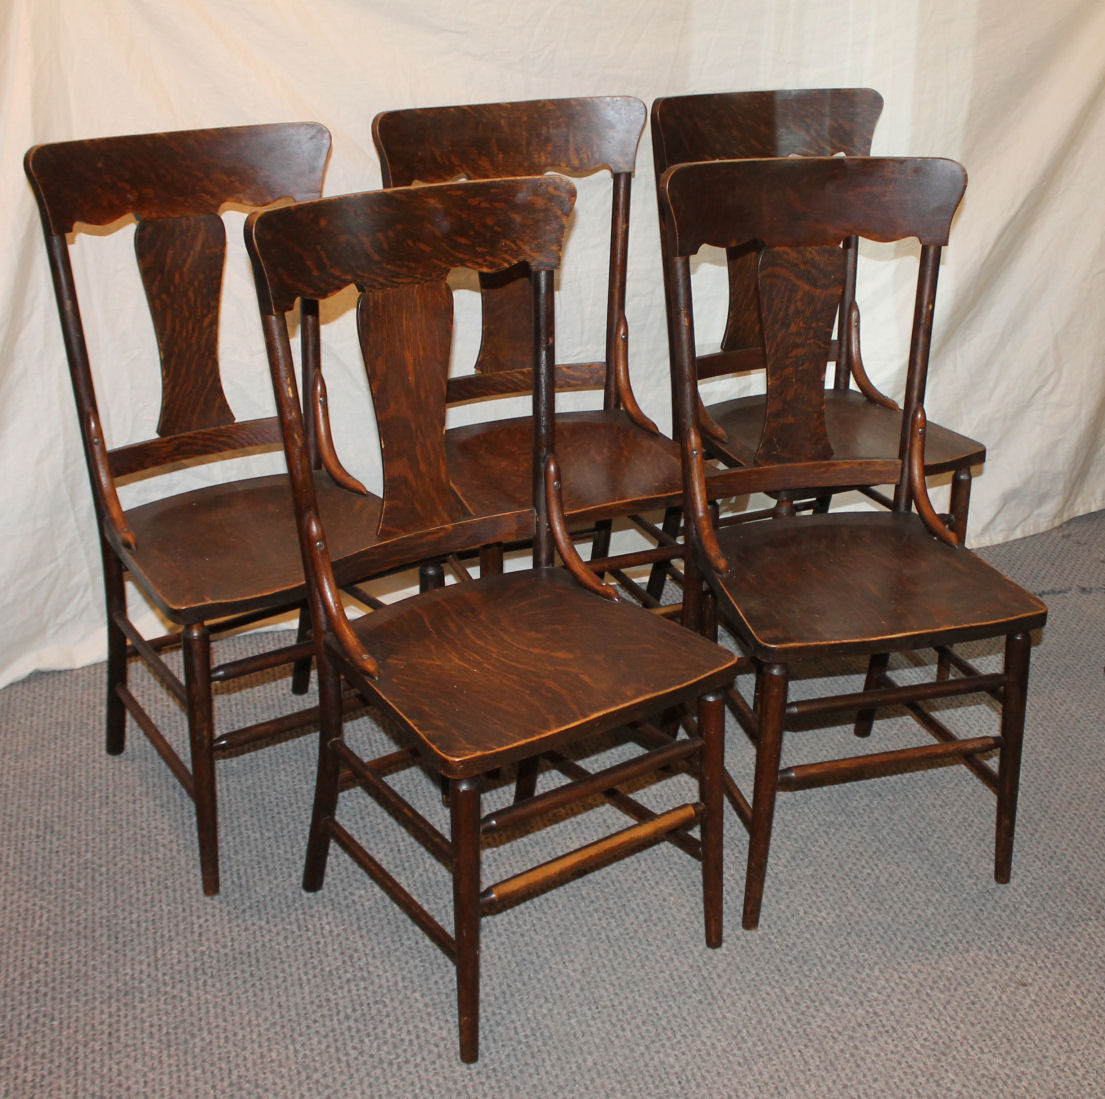 Five Chairs Bargain John 39s Antiques Set Of Five Chairs Grain